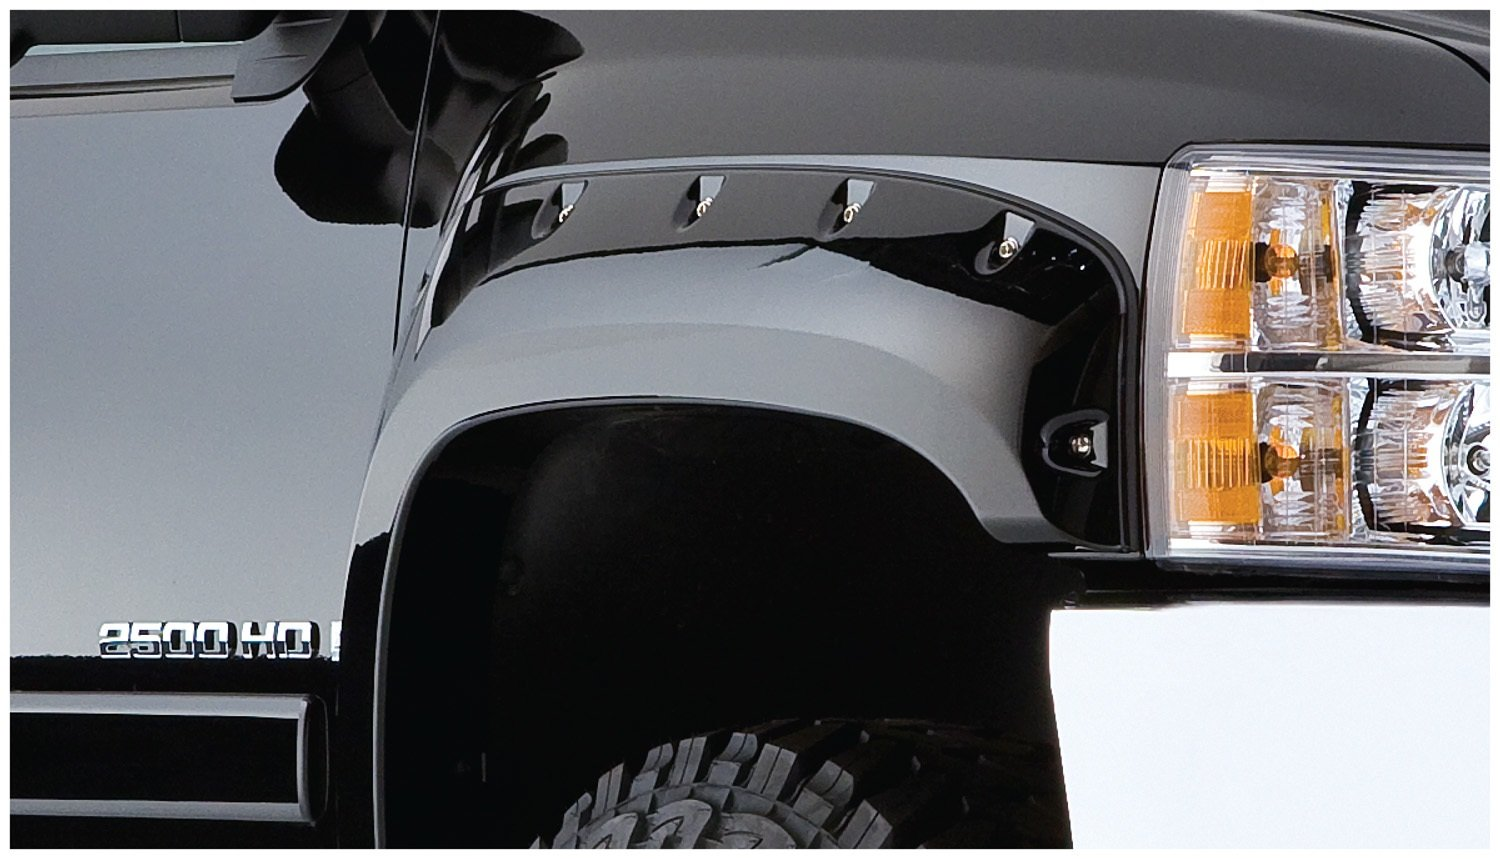 Bushwacker 40924-02 Chevrolet Pocket Style Fender Flare Set of 4